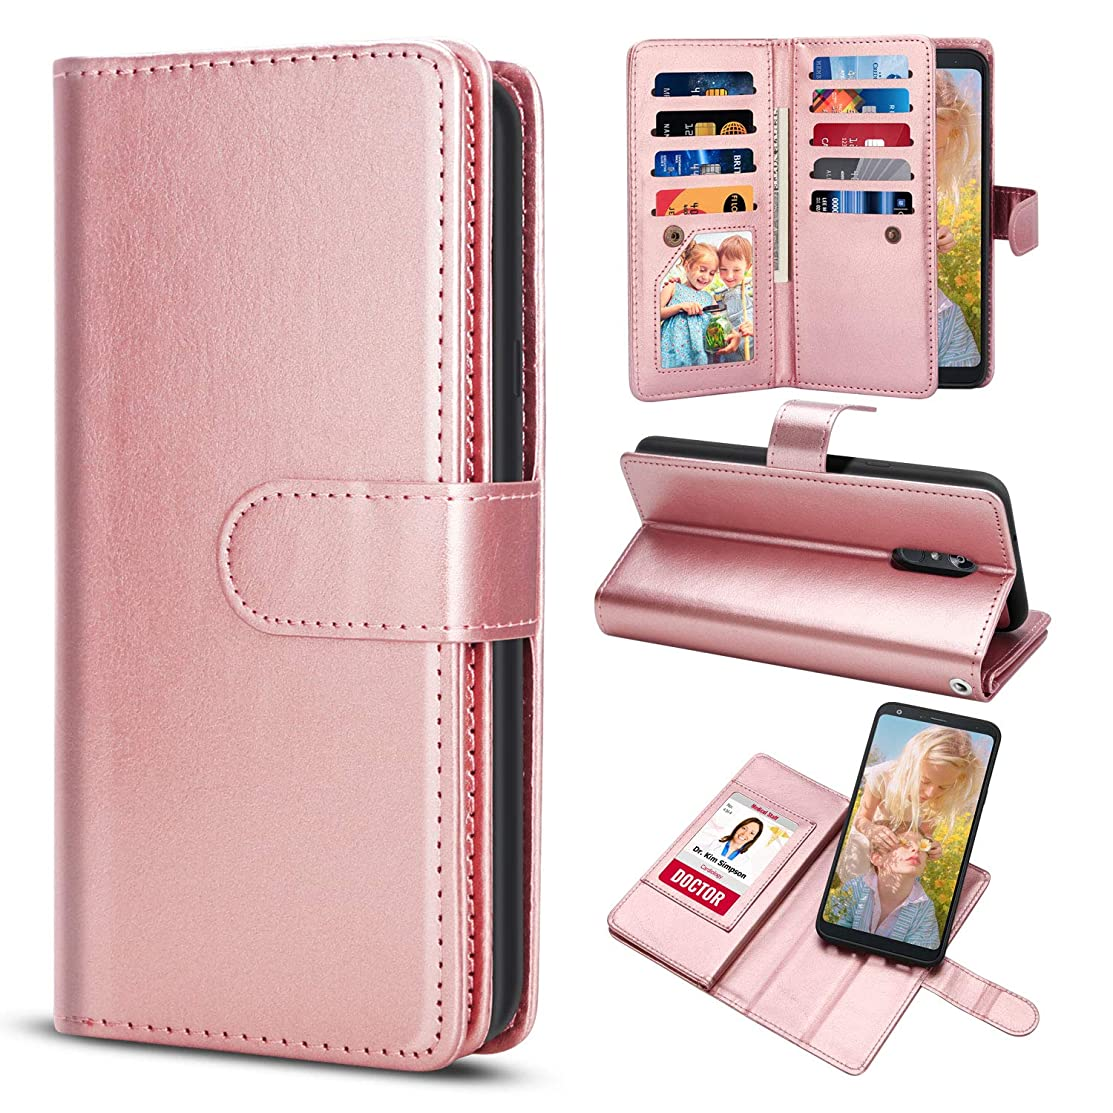 TILL for LG Q Stylus Plus/LG Stylo 4 Case, TILL LG Stylus 4 Wallet Case PU Leather Carrying Flip Cover [Cash Credit Card Slot Holder & Kickstand] Detachable Magnetic Folio Full Case Shell [Rose Gold]